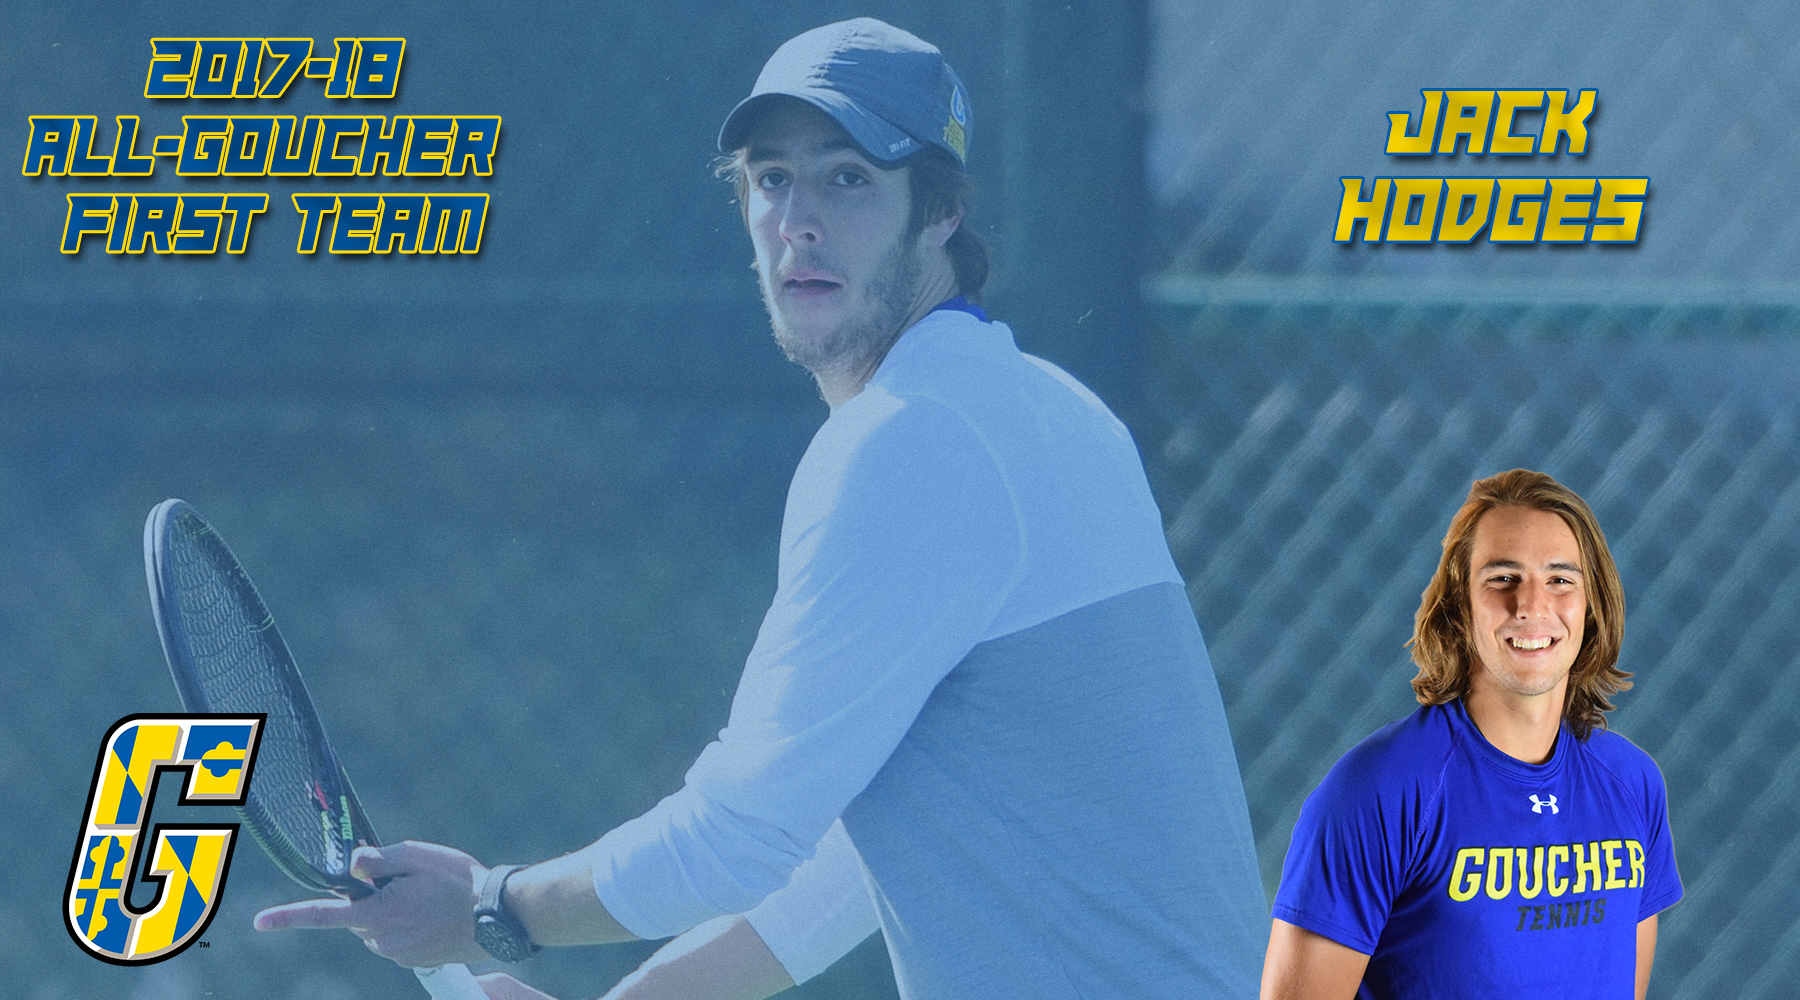 All-Goucher First Team Selection: Men's Tennis' Jack Hodges